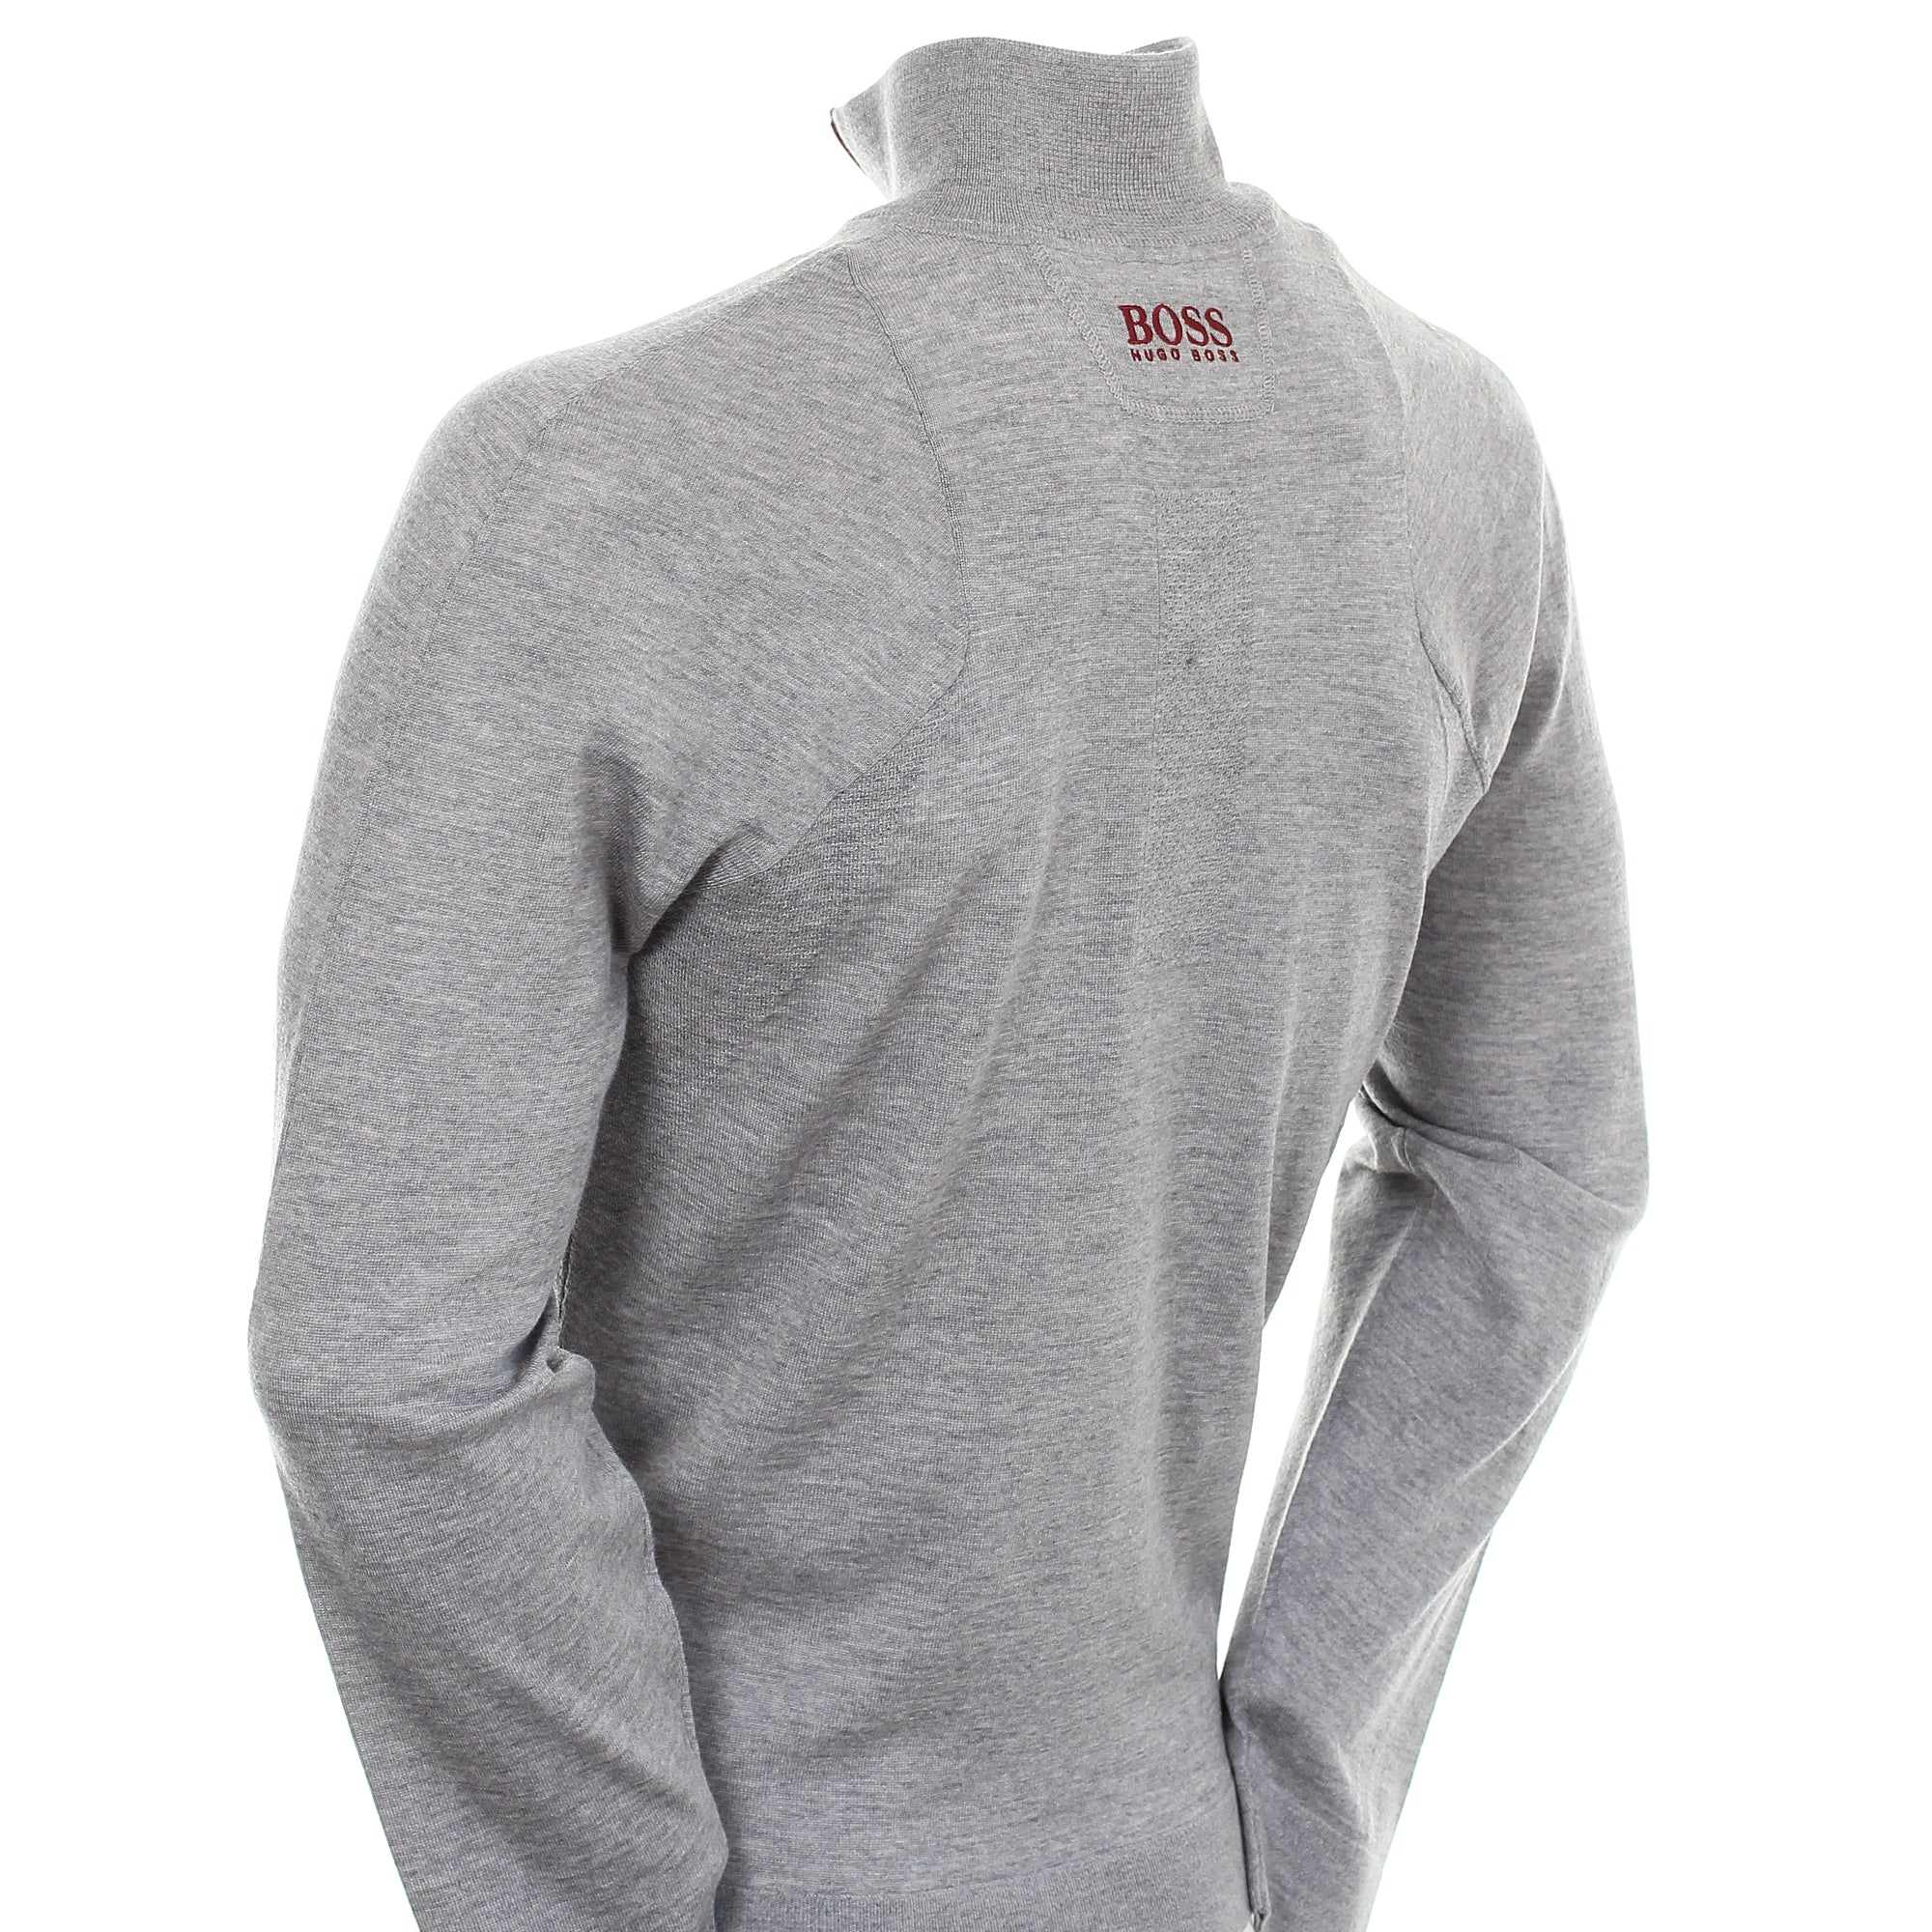 BOSS Zon Pro Zip Sweater 50413731